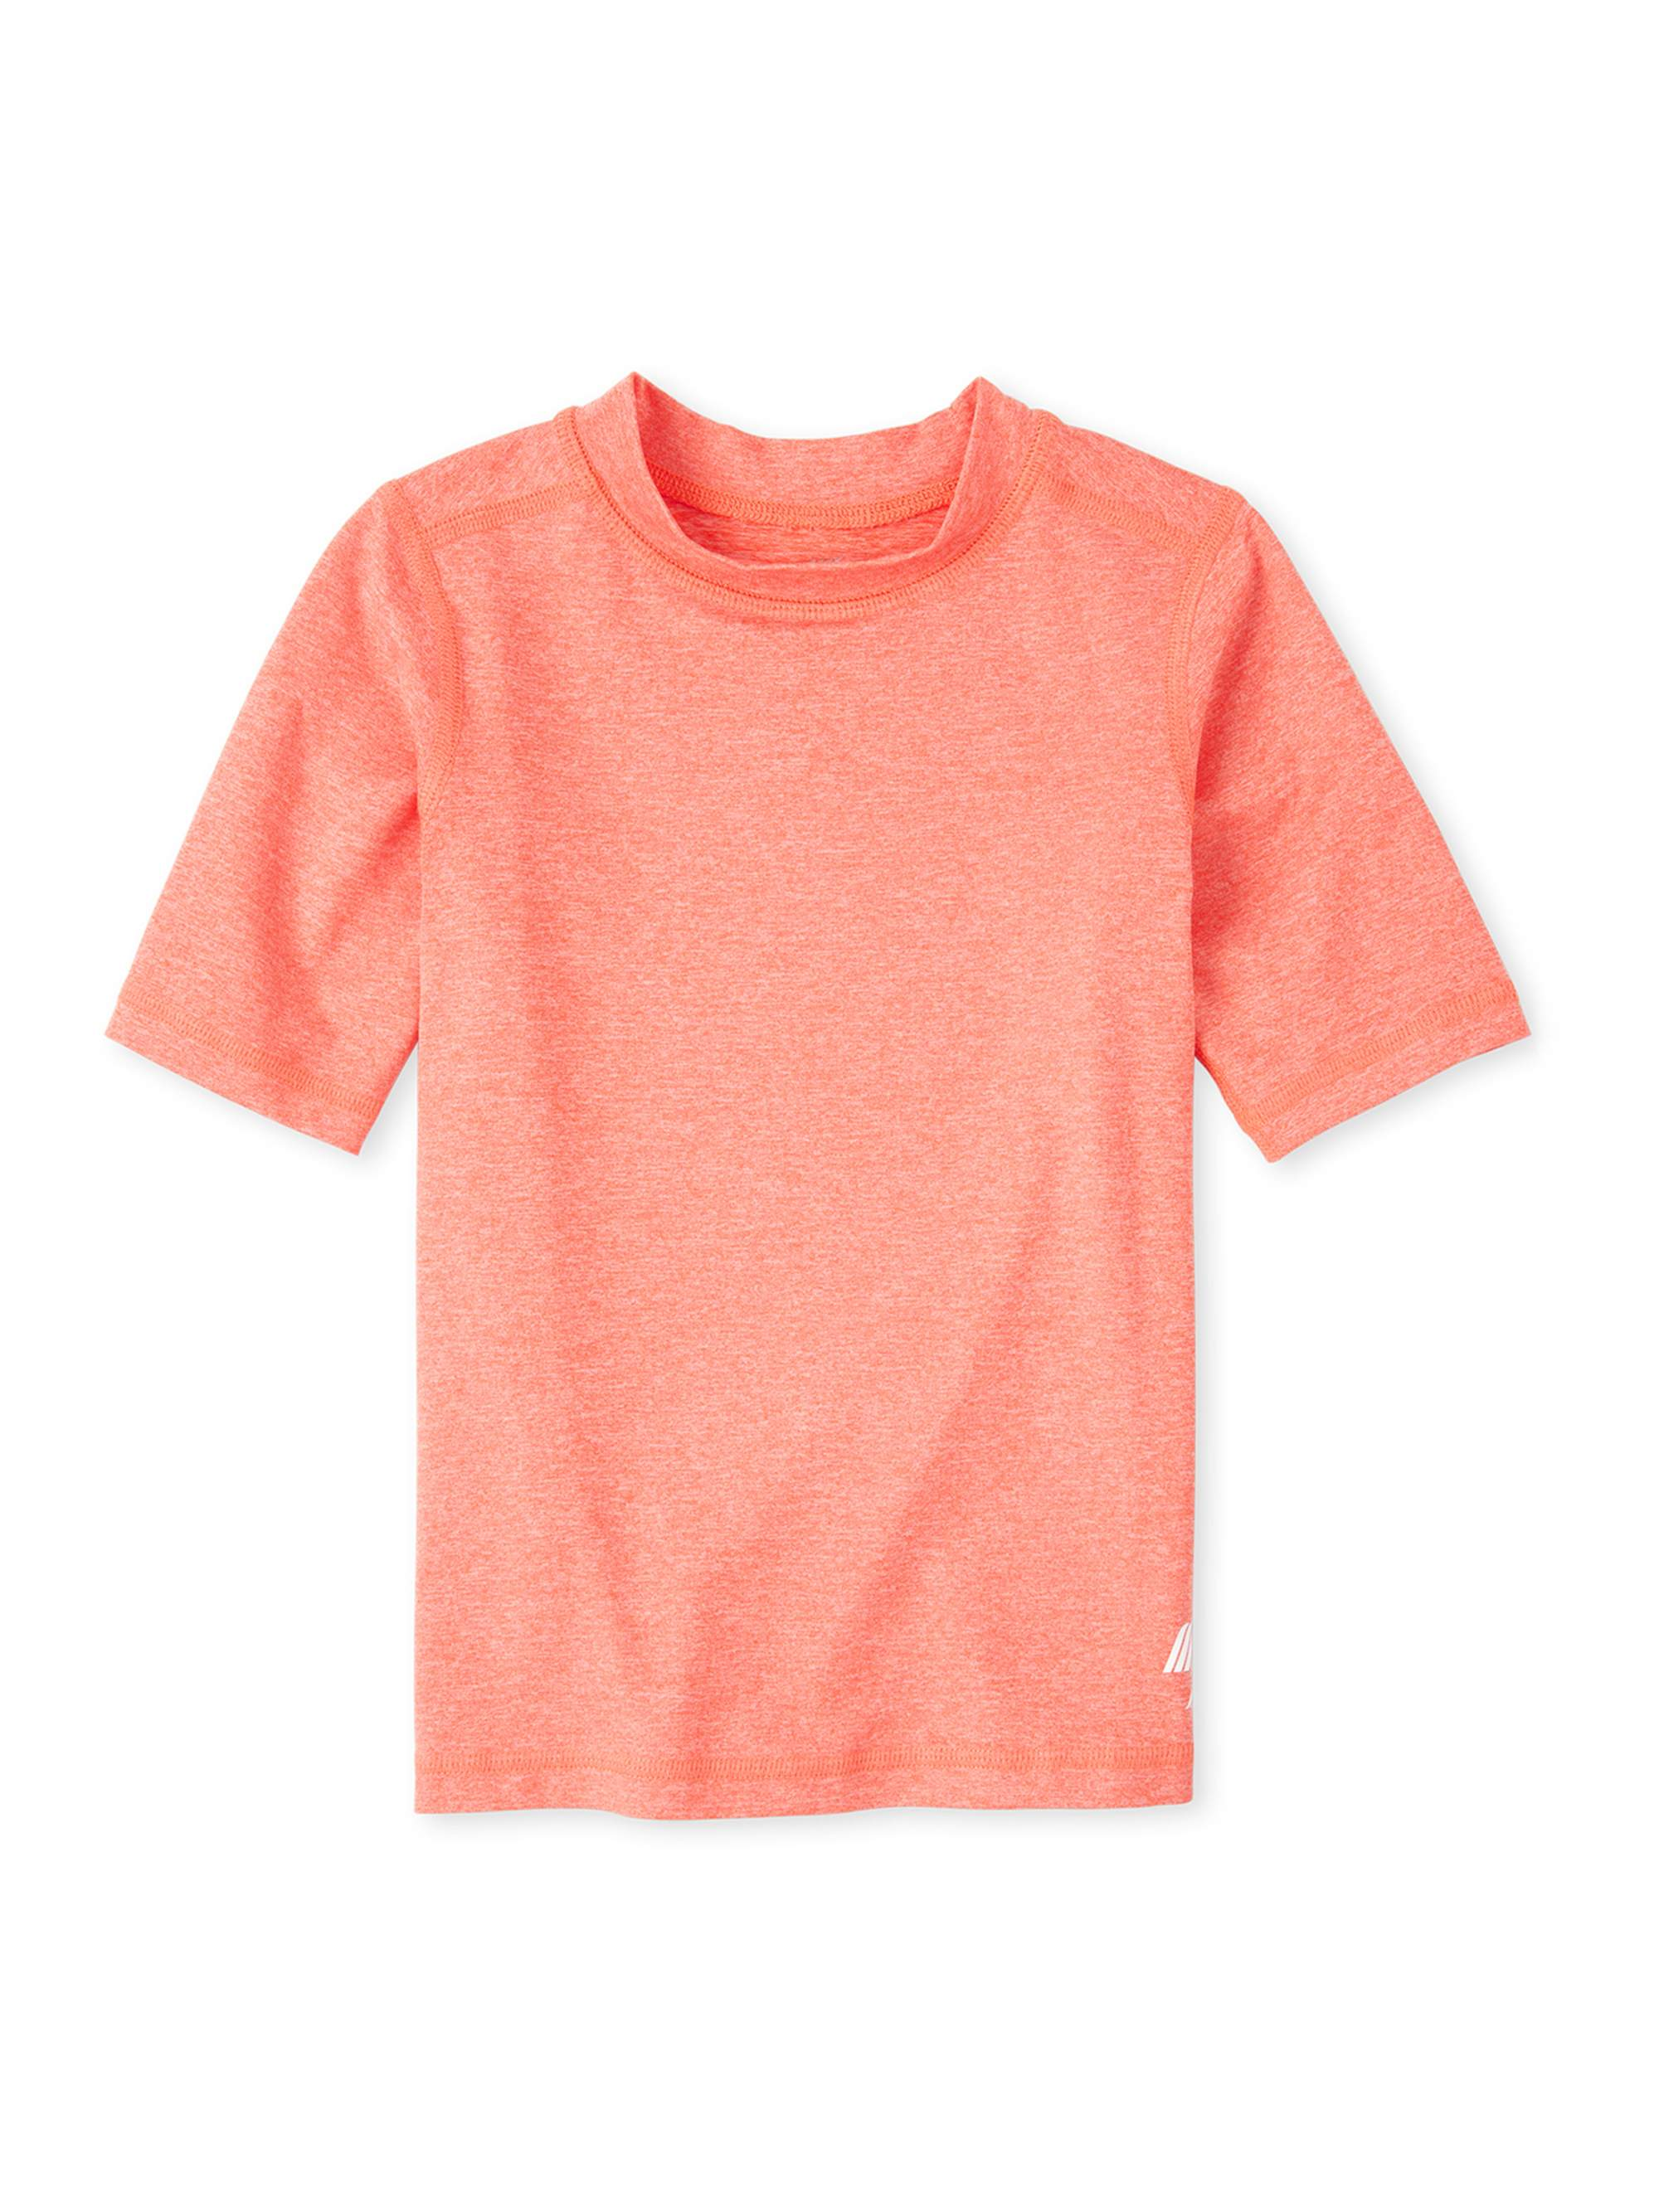 Boys water shirt uv protection summer childrens place